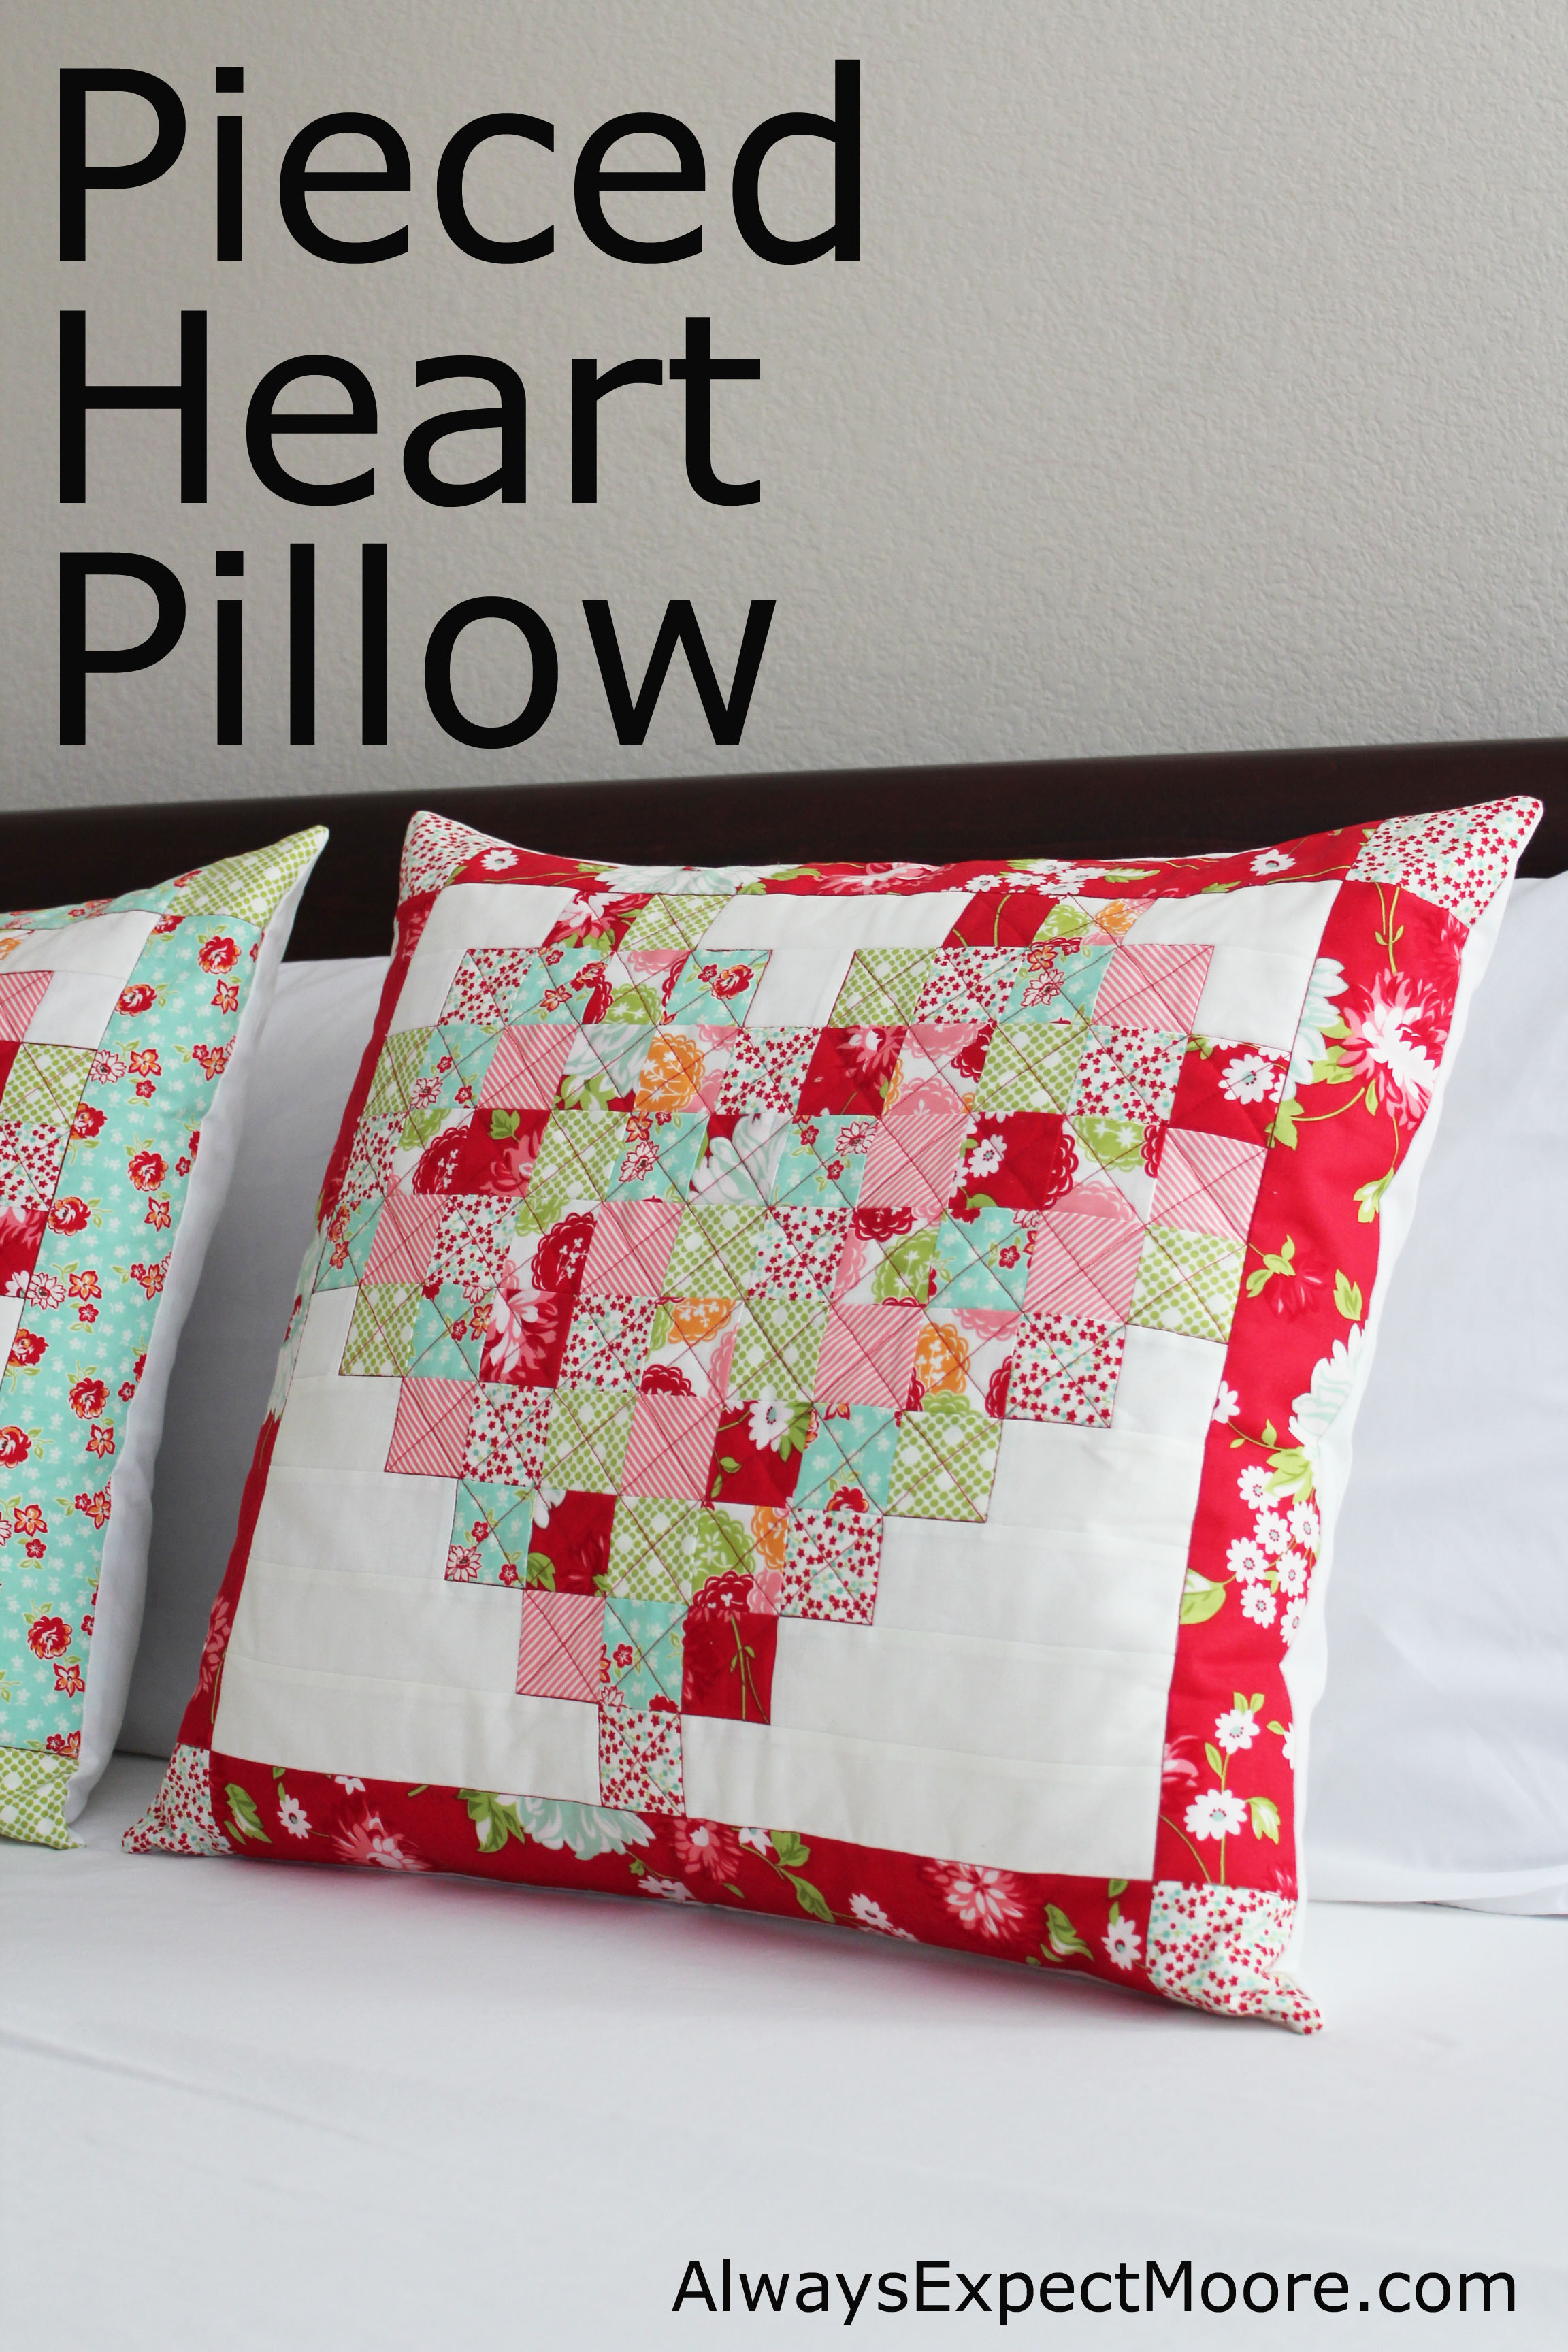 Pieced heart pillow tutorial